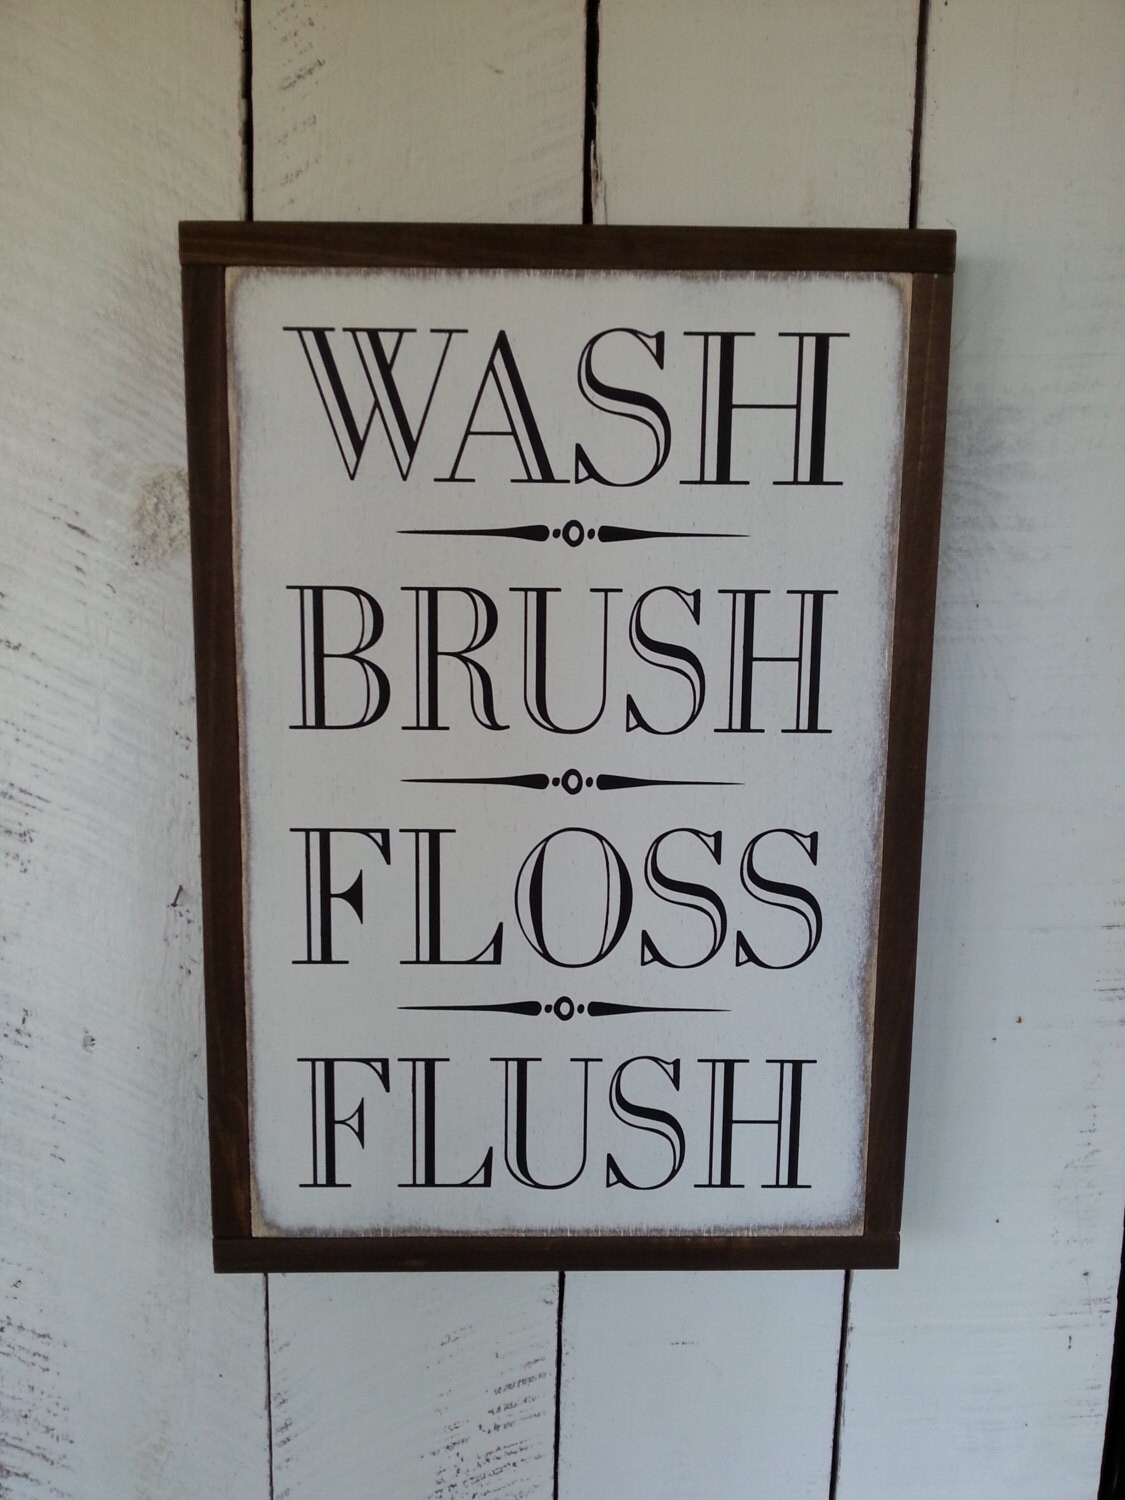 Wash Brush Floss Flush Sign   Bathroom Sign   Farmhouse Decor   Rustic Bathroom  Decor   Home Decor   Bathroom Signs   Childrens Signs